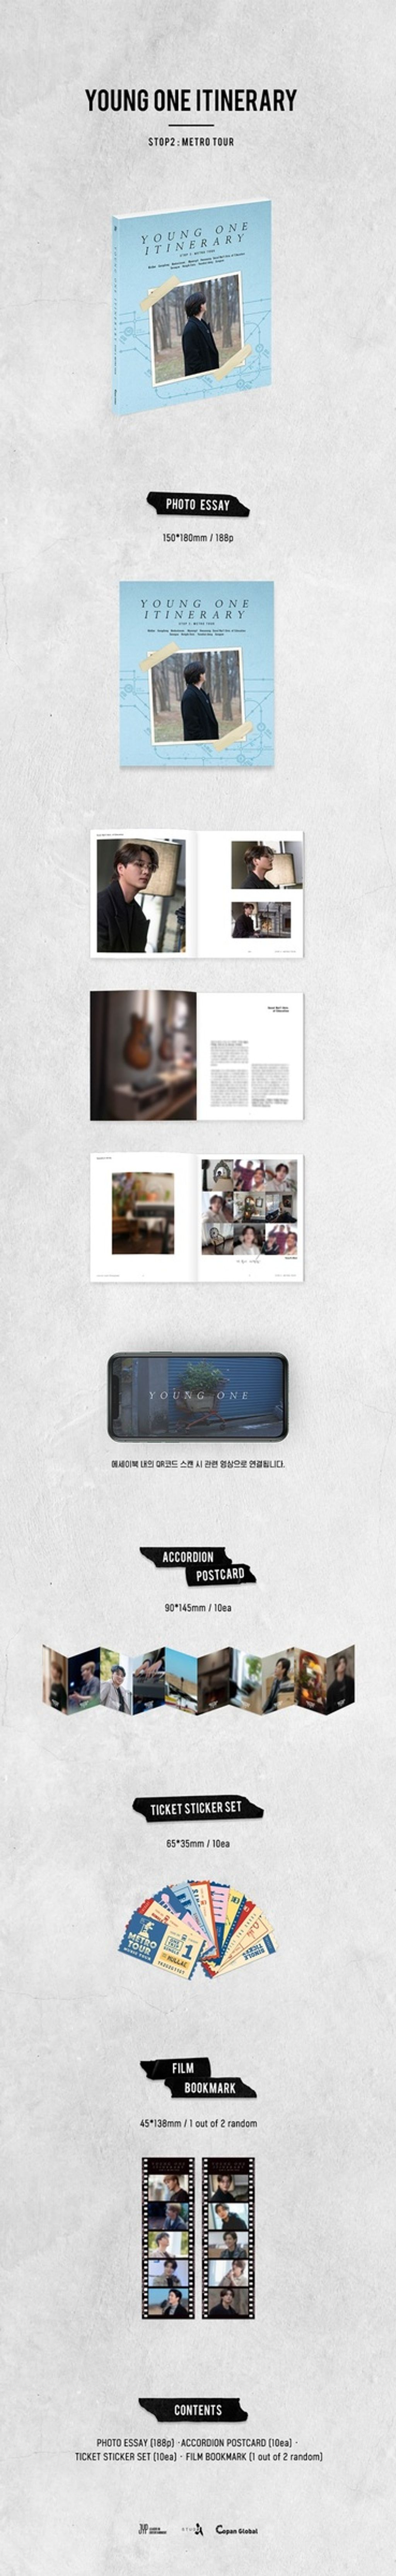 FG1045a youngk - YOUNG ONE ITINERARY.jpg